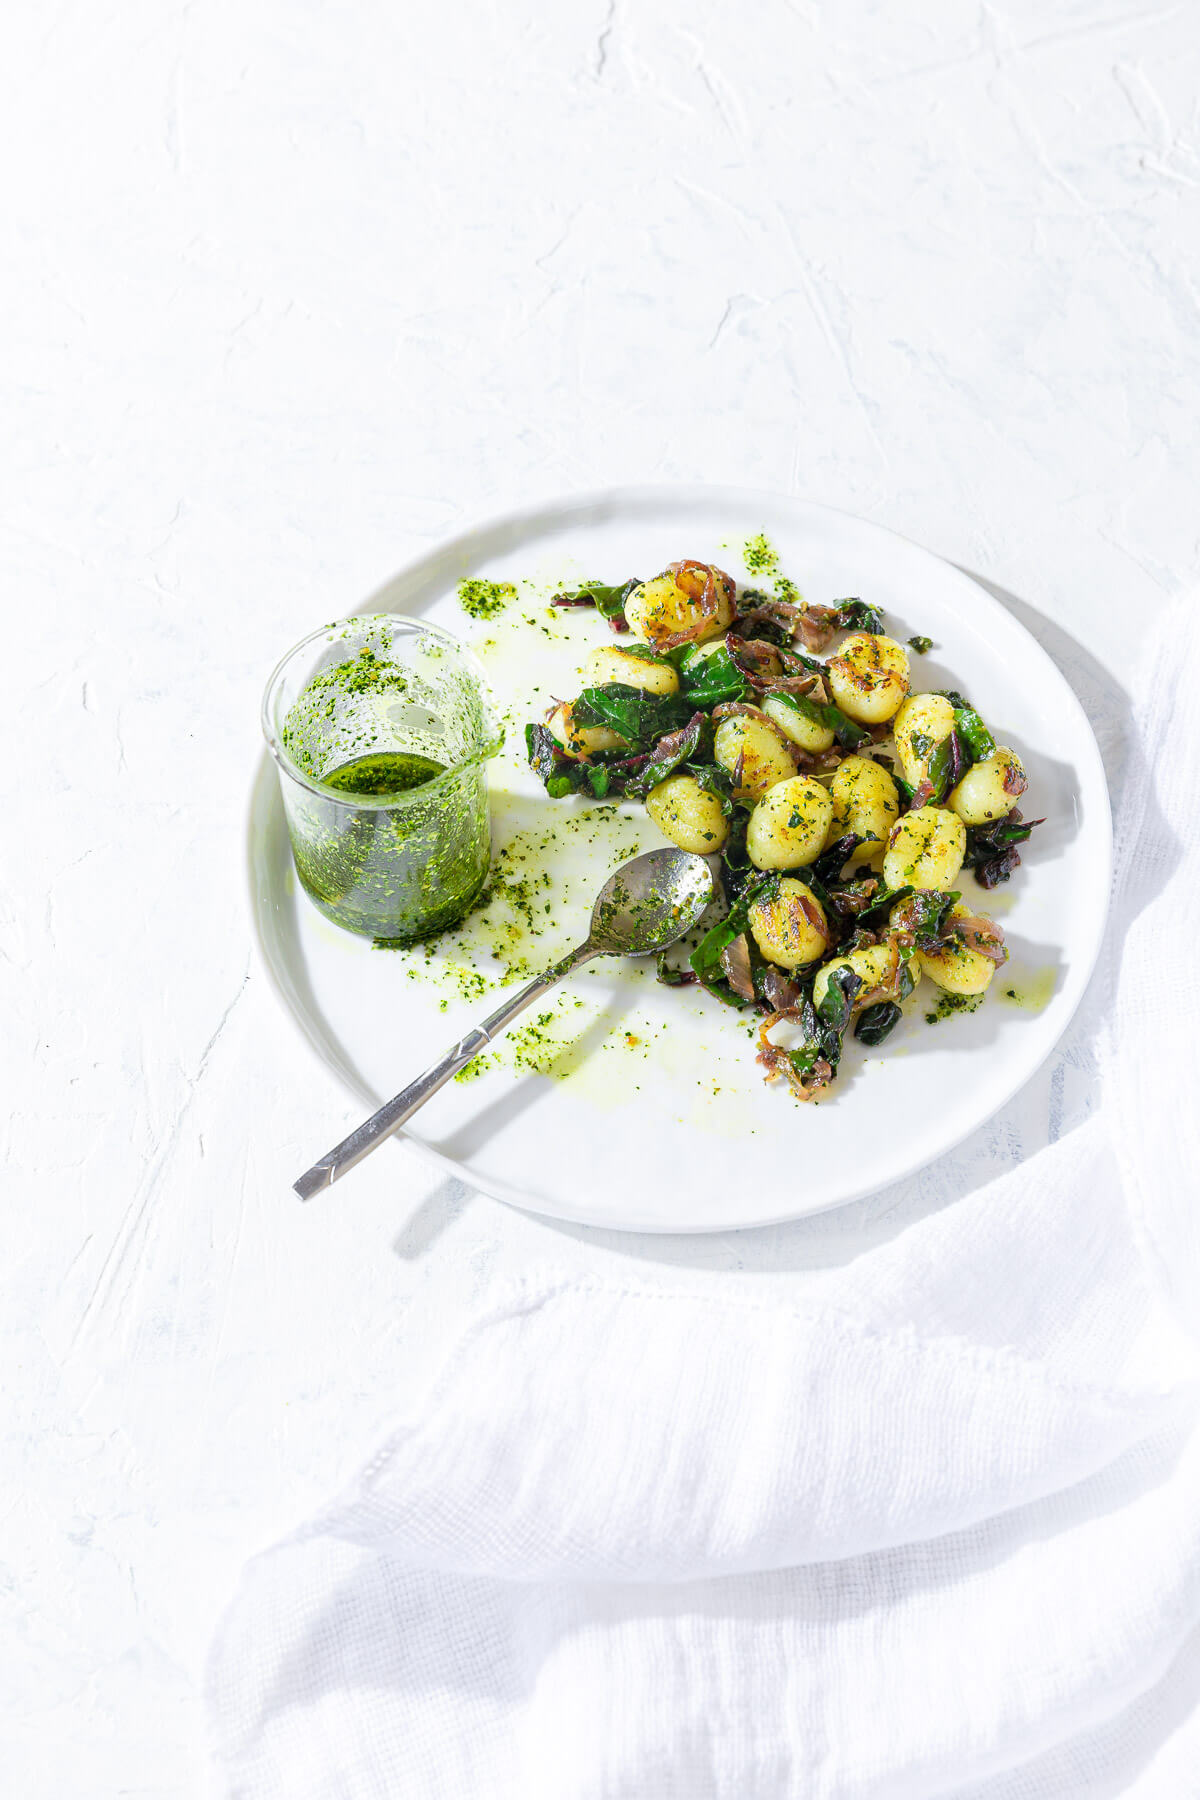 Plate of gnocchi with sautéed greens and kale pesto shown with a jar of extra pesto and a spoon.